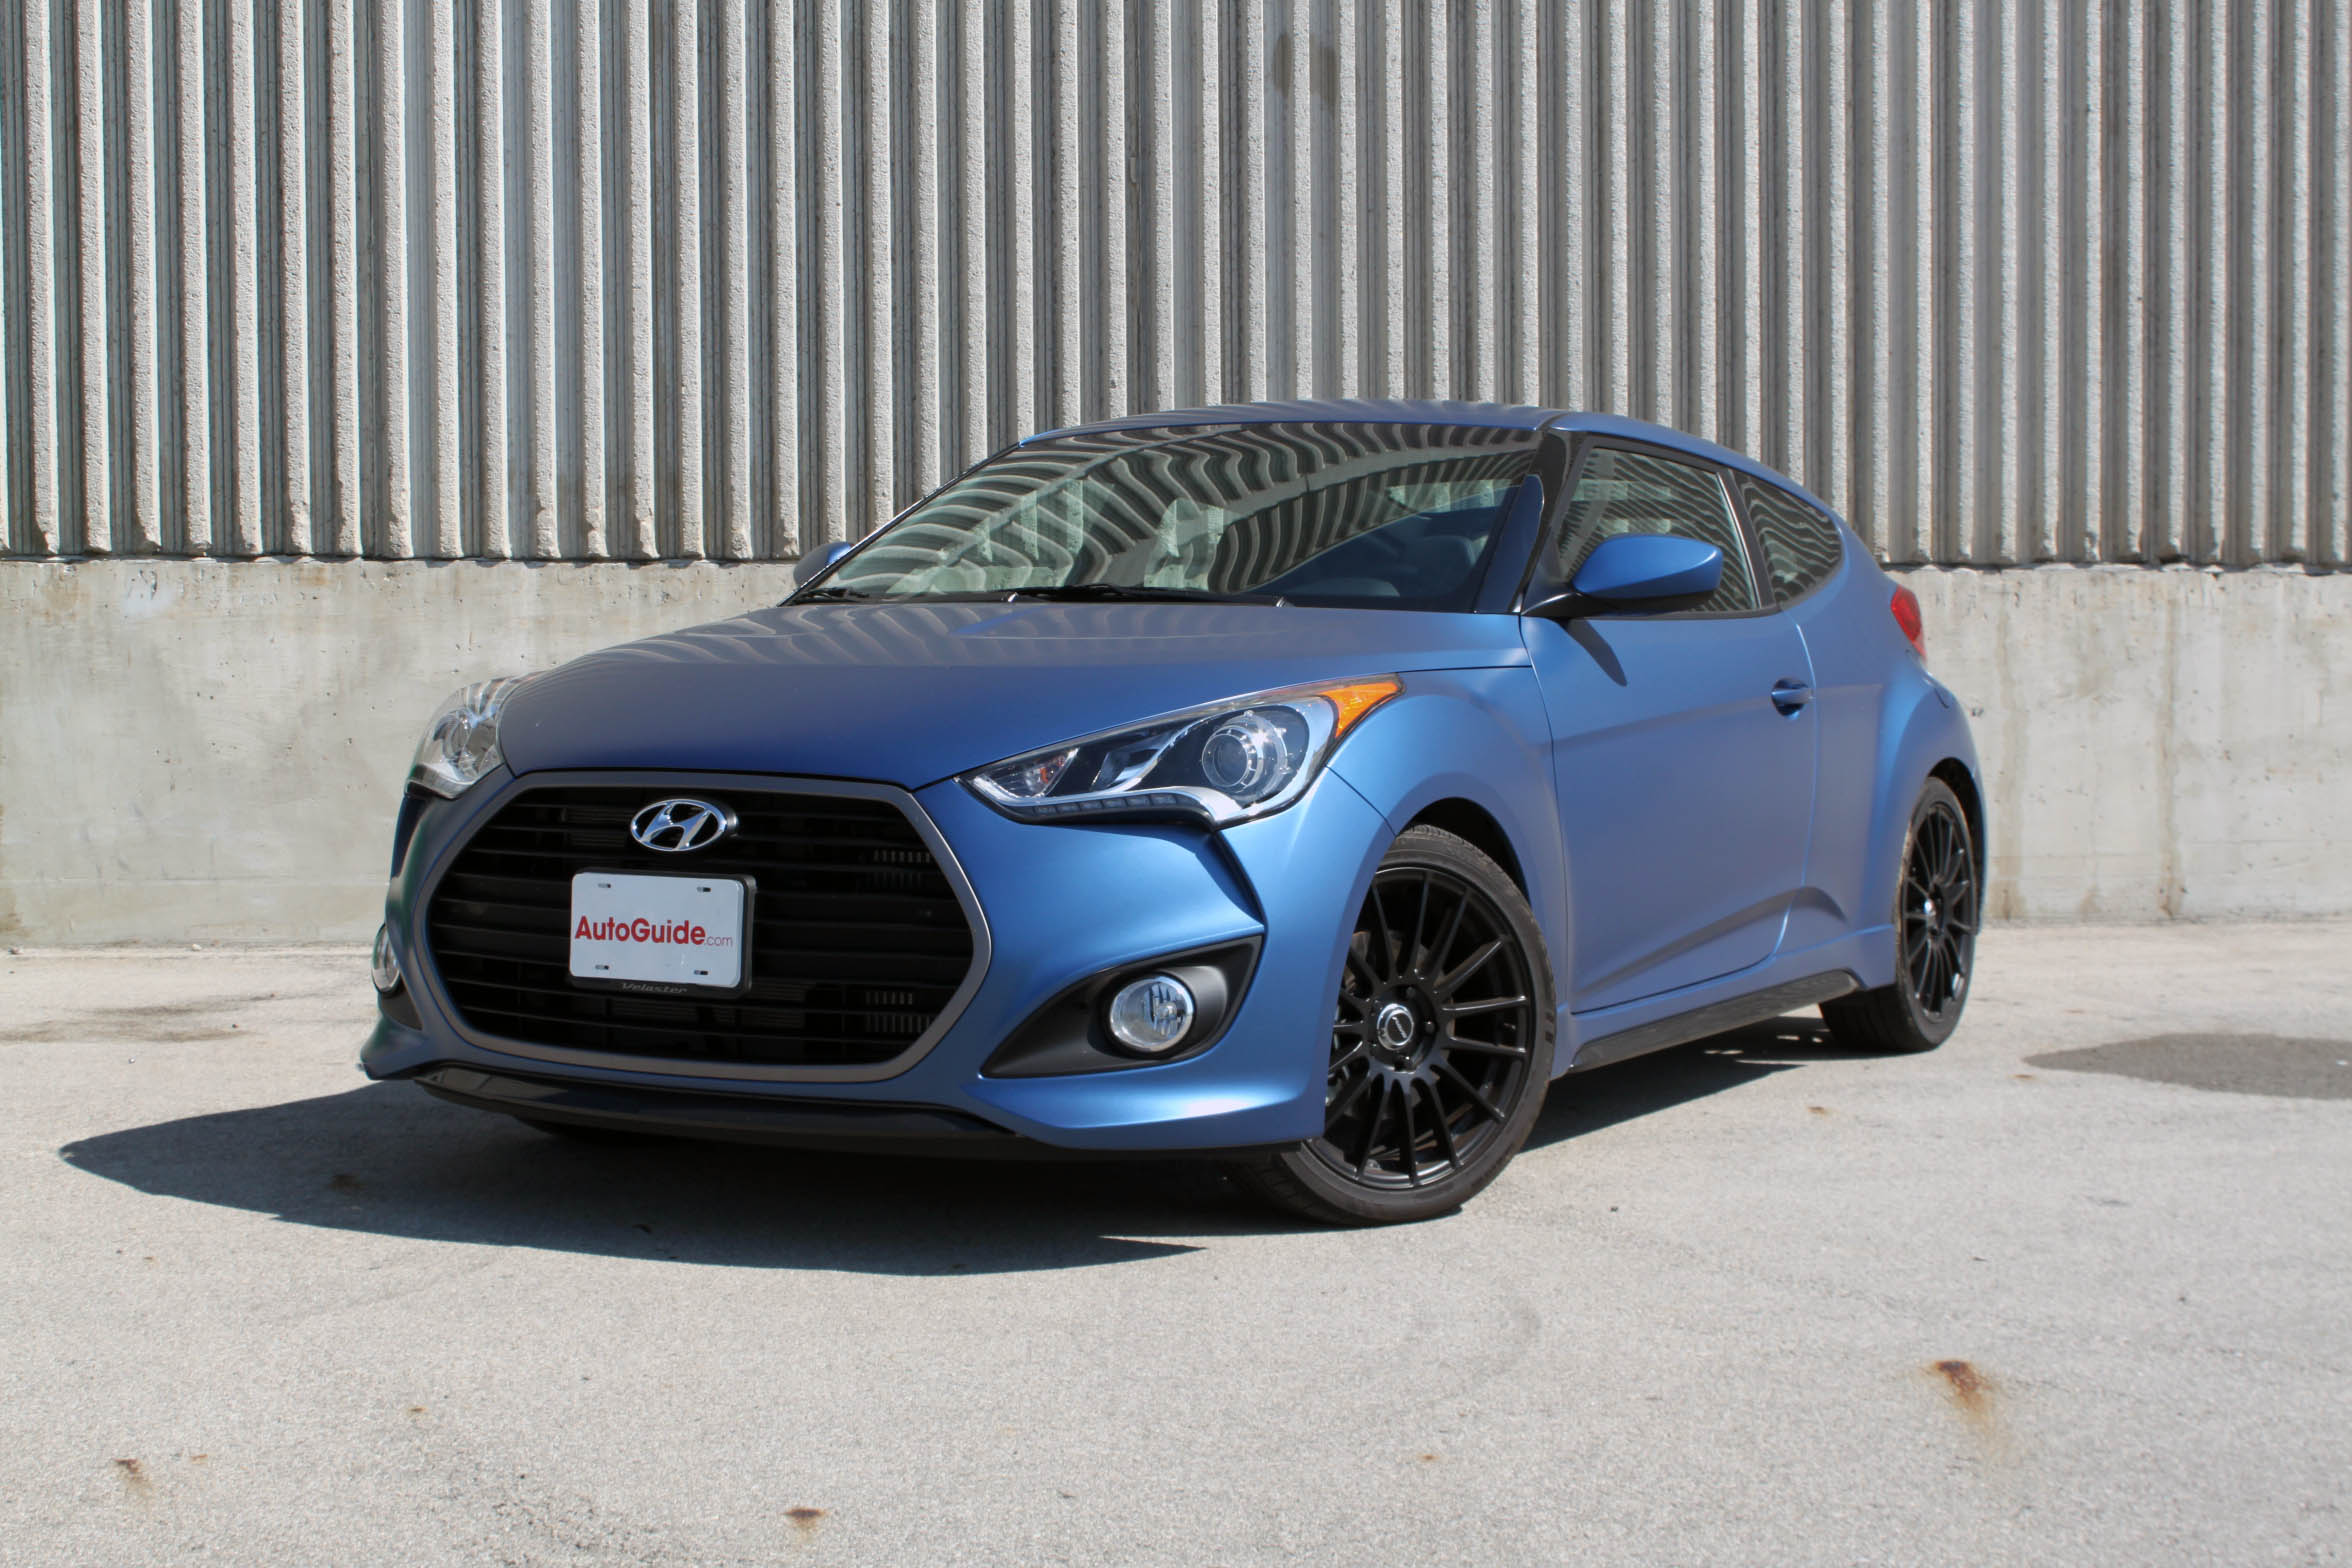 hyundai veloster rally 2019 2020 new car release date. Black Bedroom Furniture Sets. Home Design Ideas